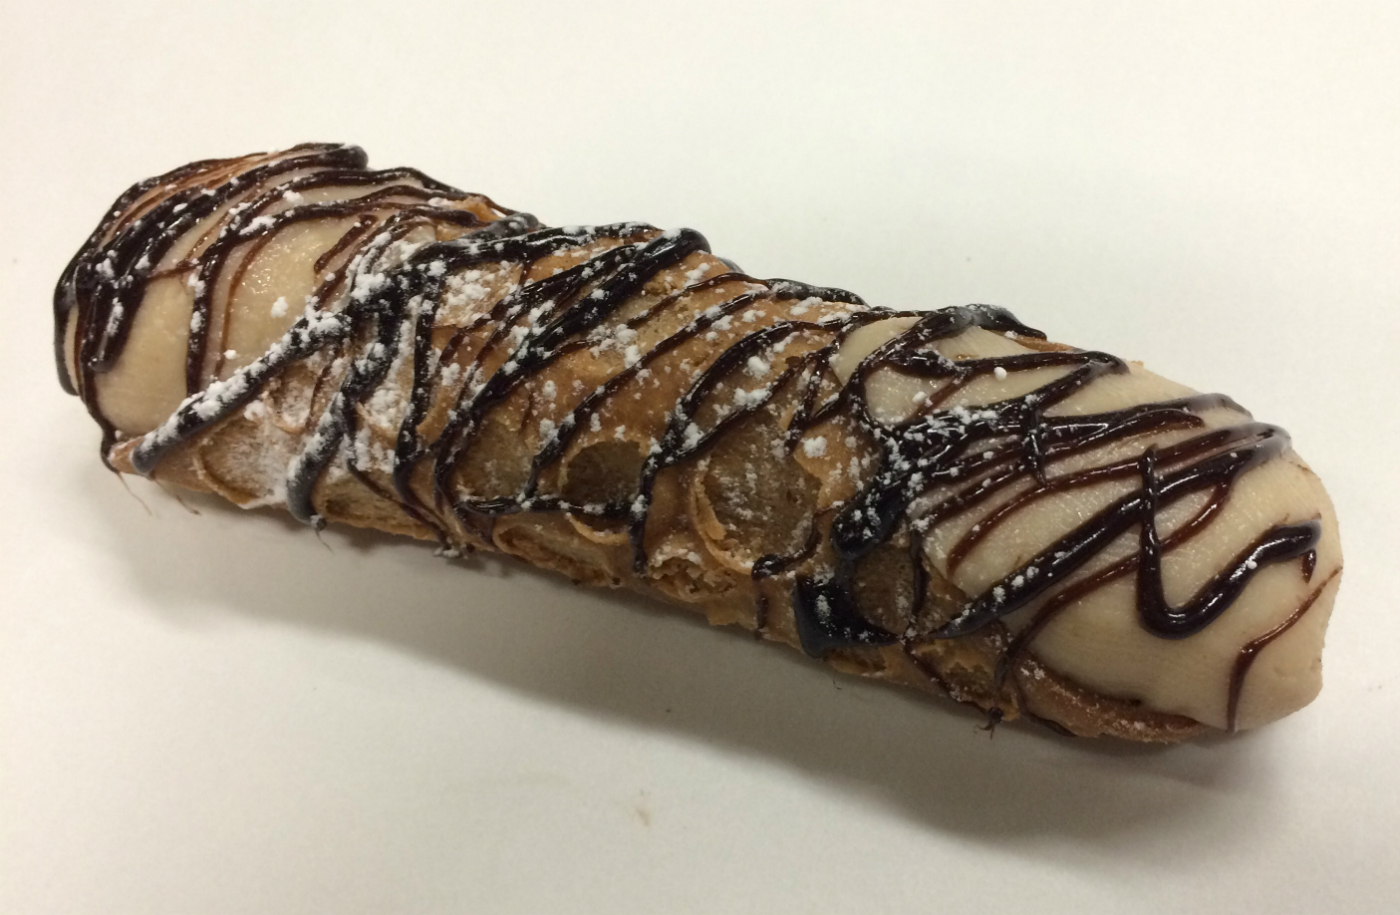 Cannoli World image 3